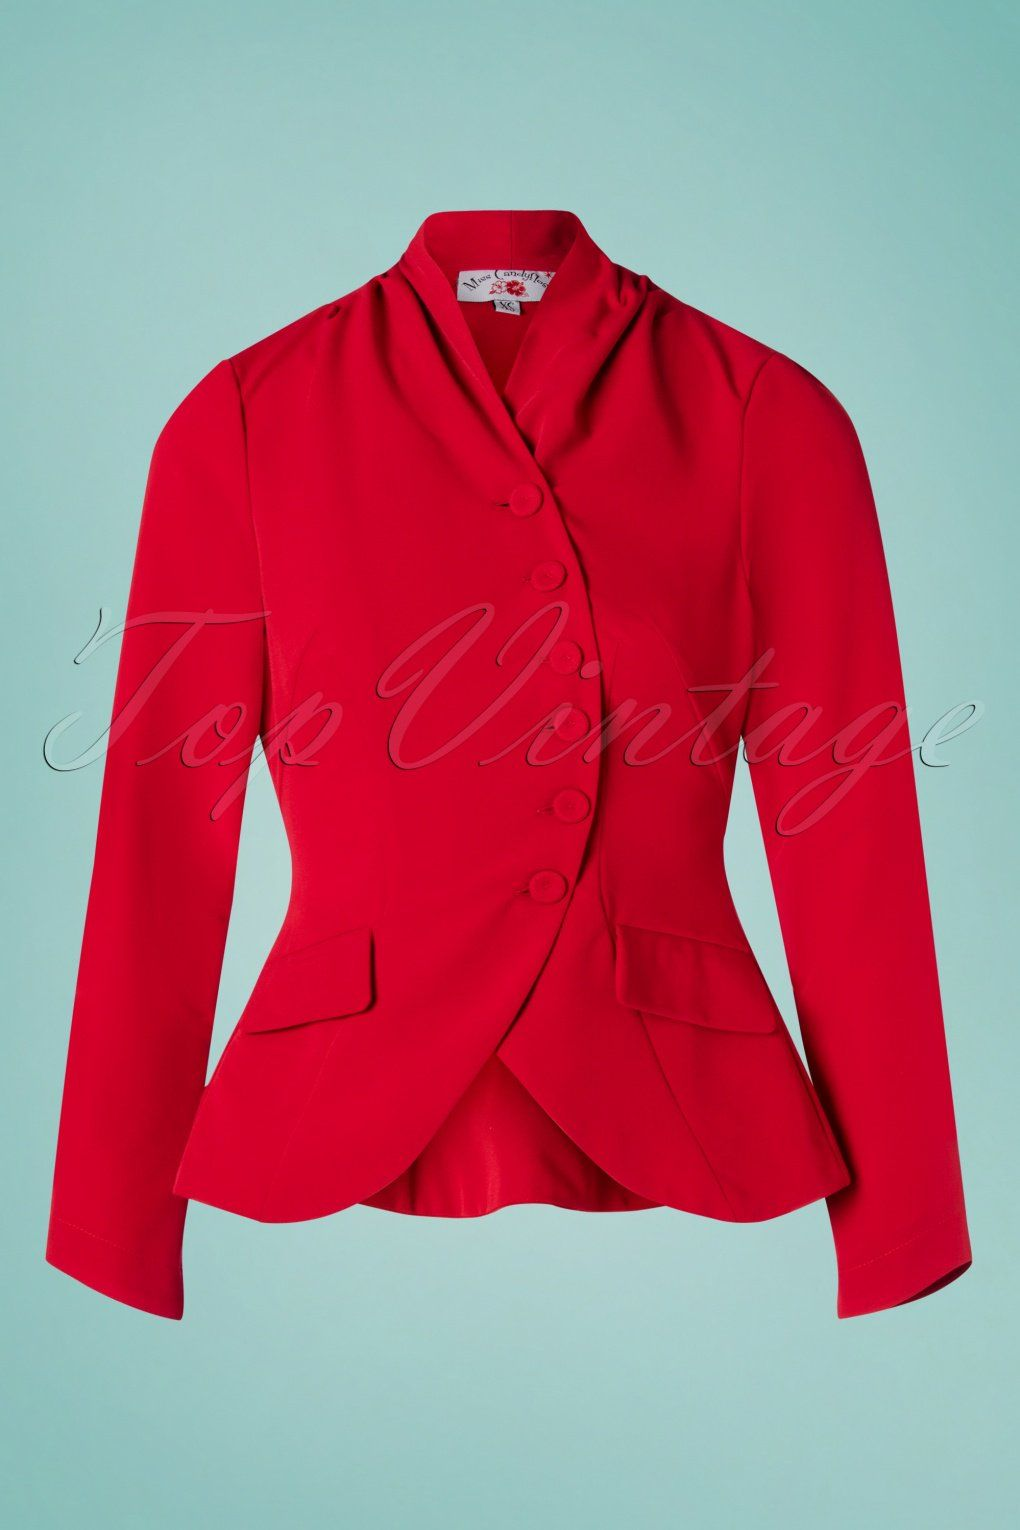 This 40s Clemence Jacket In Red Oozes 1940s Style Clemence Features Long Sleeves A Row Of Buttons And From The Waist She R Jackets Swing Fashion 50th Clothes